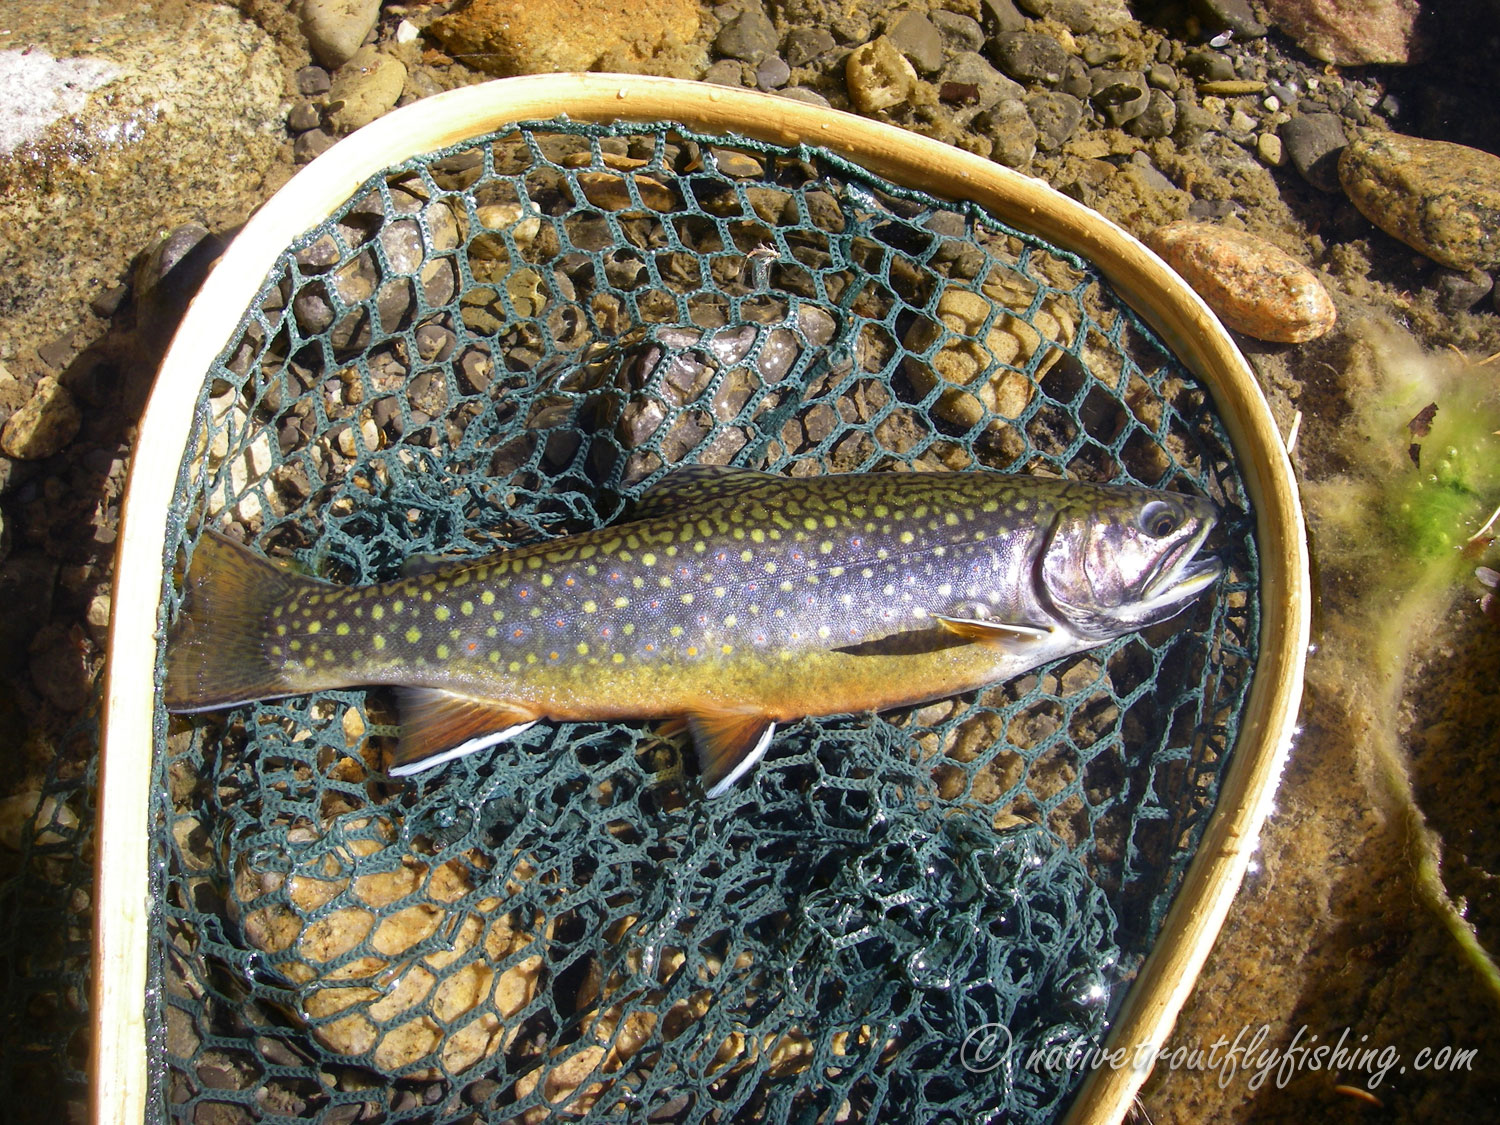 Native Trout Fly Fishing: Brook Trout - photo#19